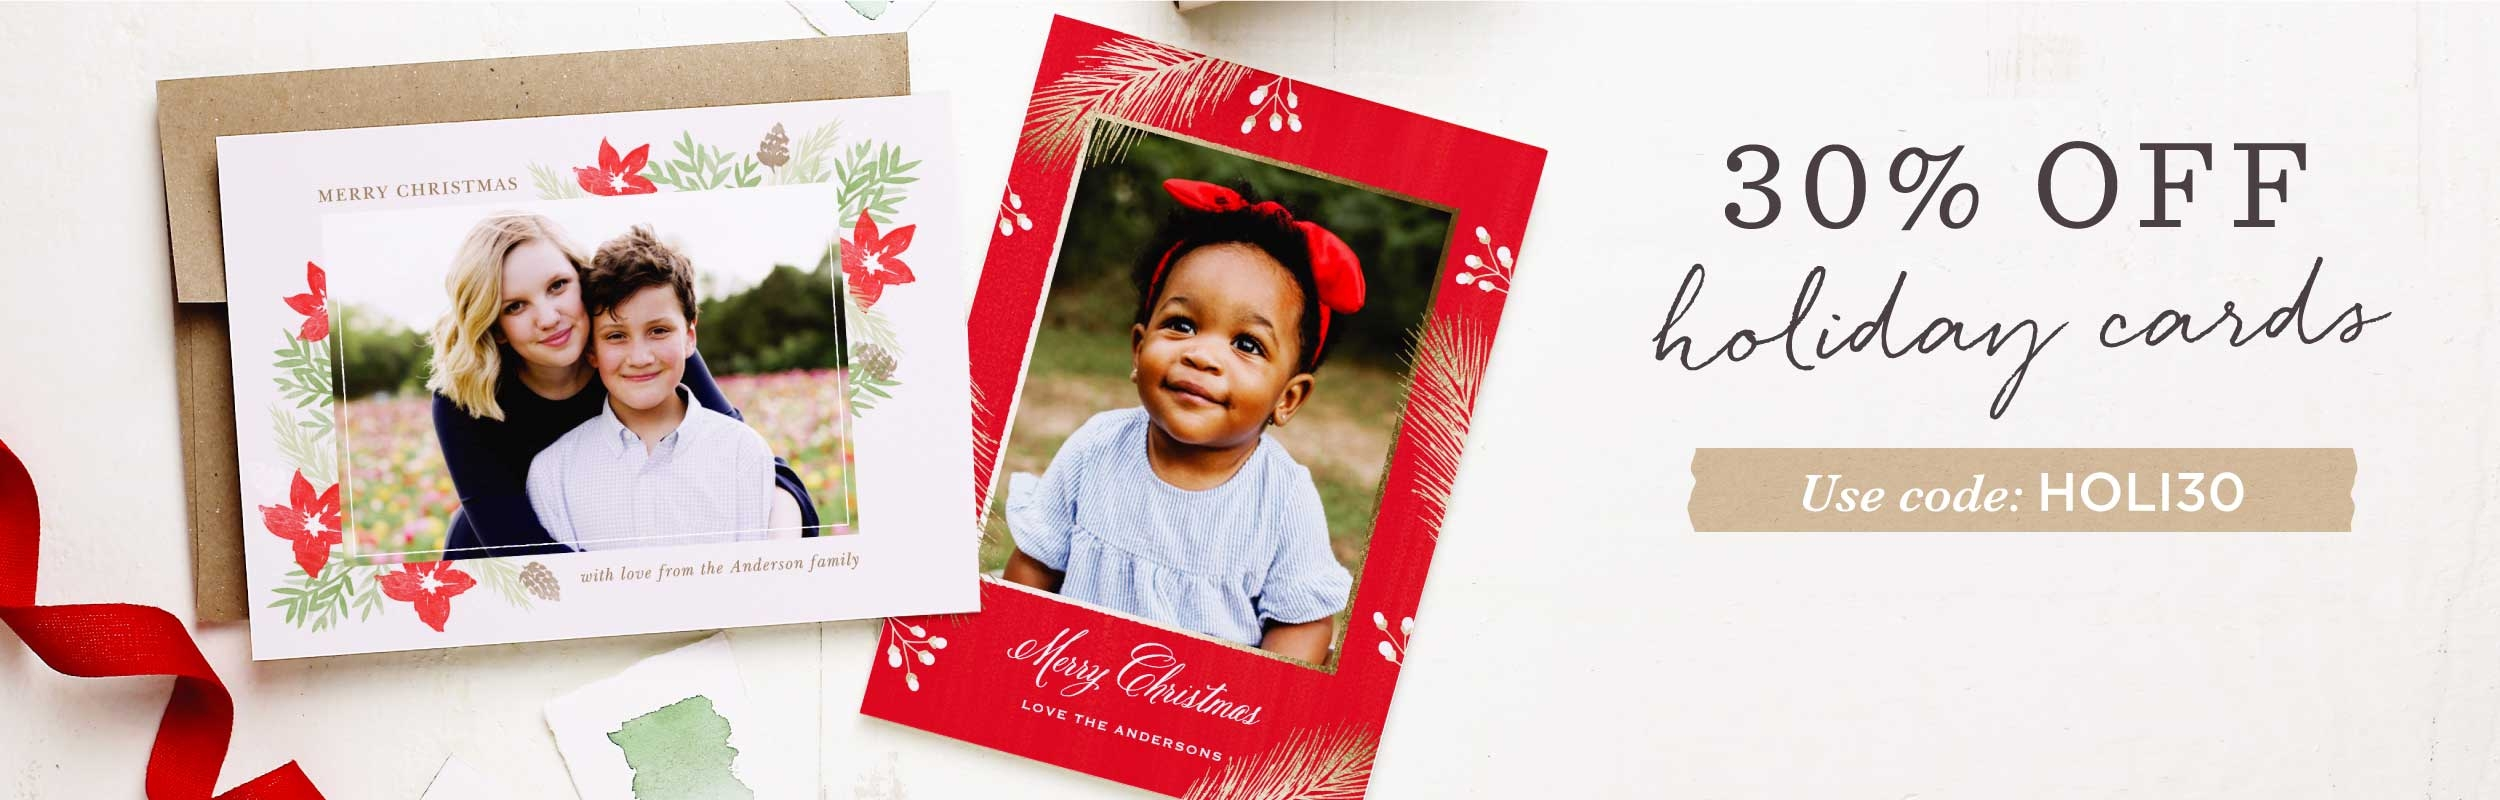 Christmas Cards 30 Off Super Cute Designs Basic Invite